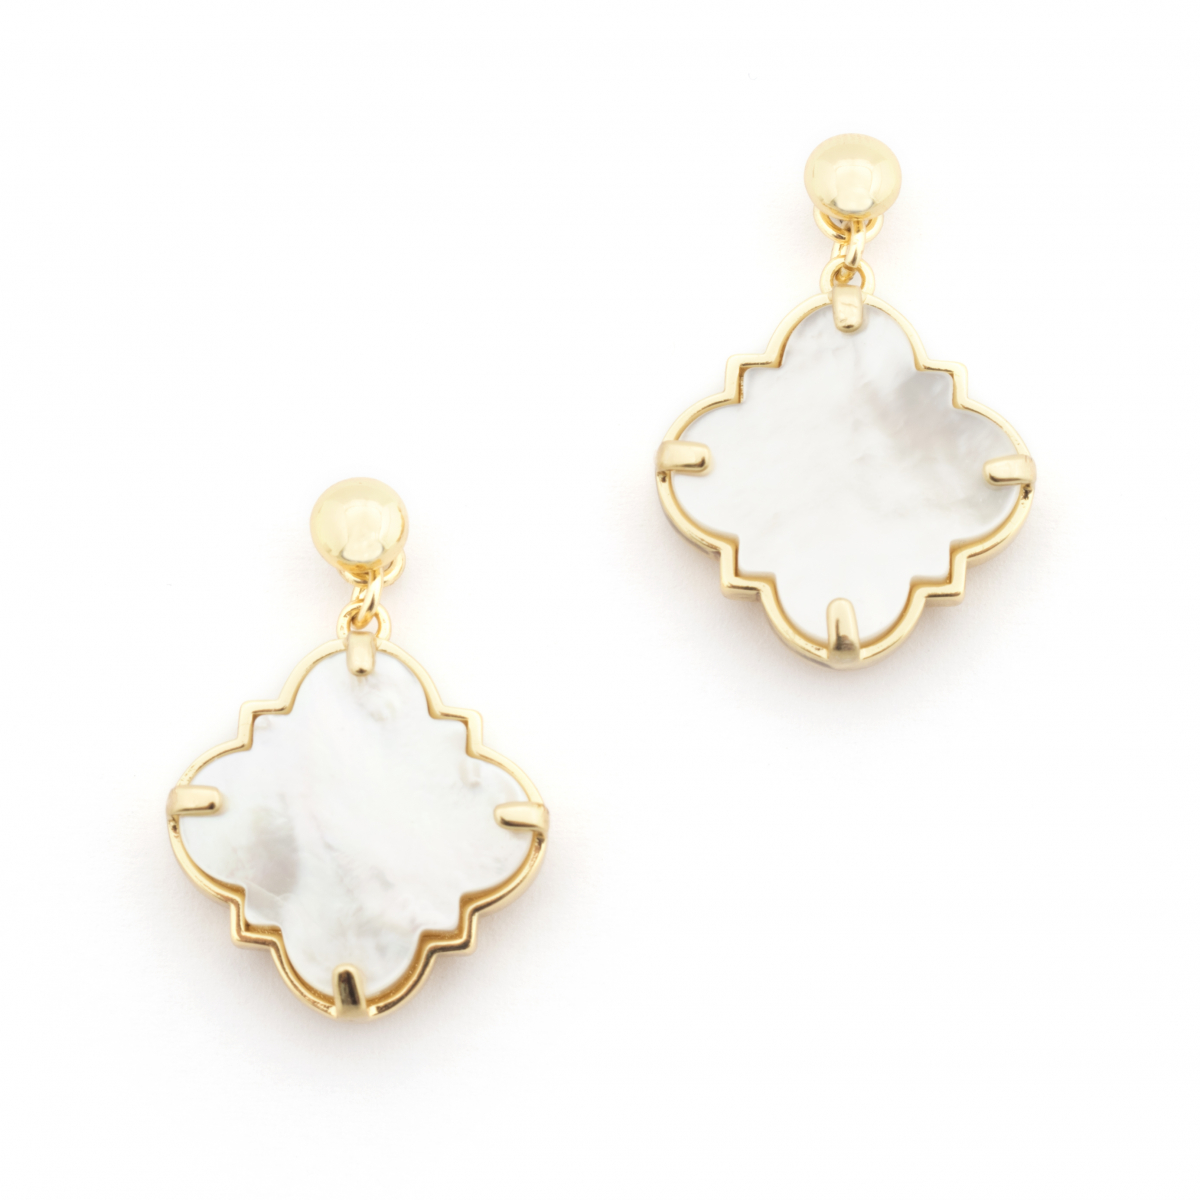 Filigree Morocco Earrings - Mother of Pearl